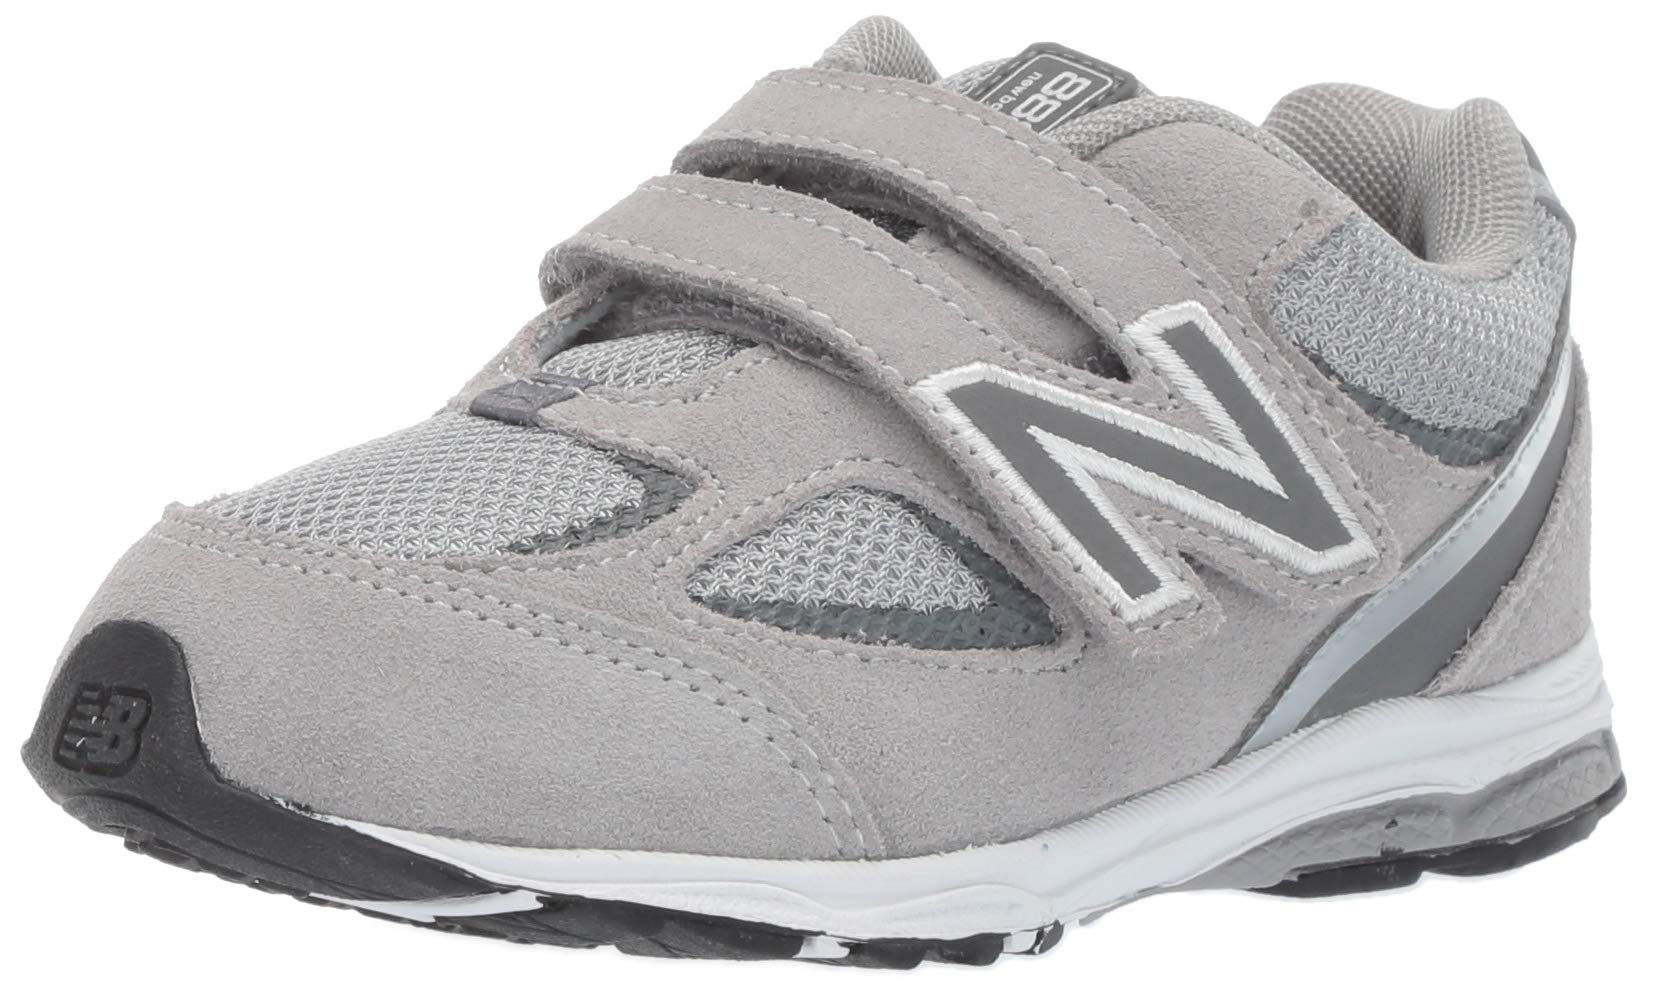 New Balance Boys' 888v2 Hook and Loop Running Shoe Grey, 11 M US Little Kid by New Balance